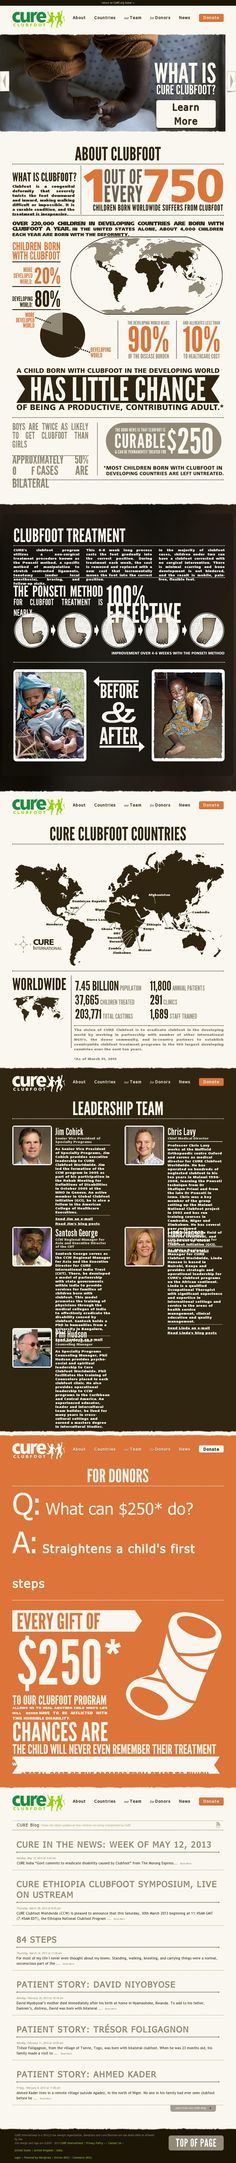 http://cure.org/clubfoot